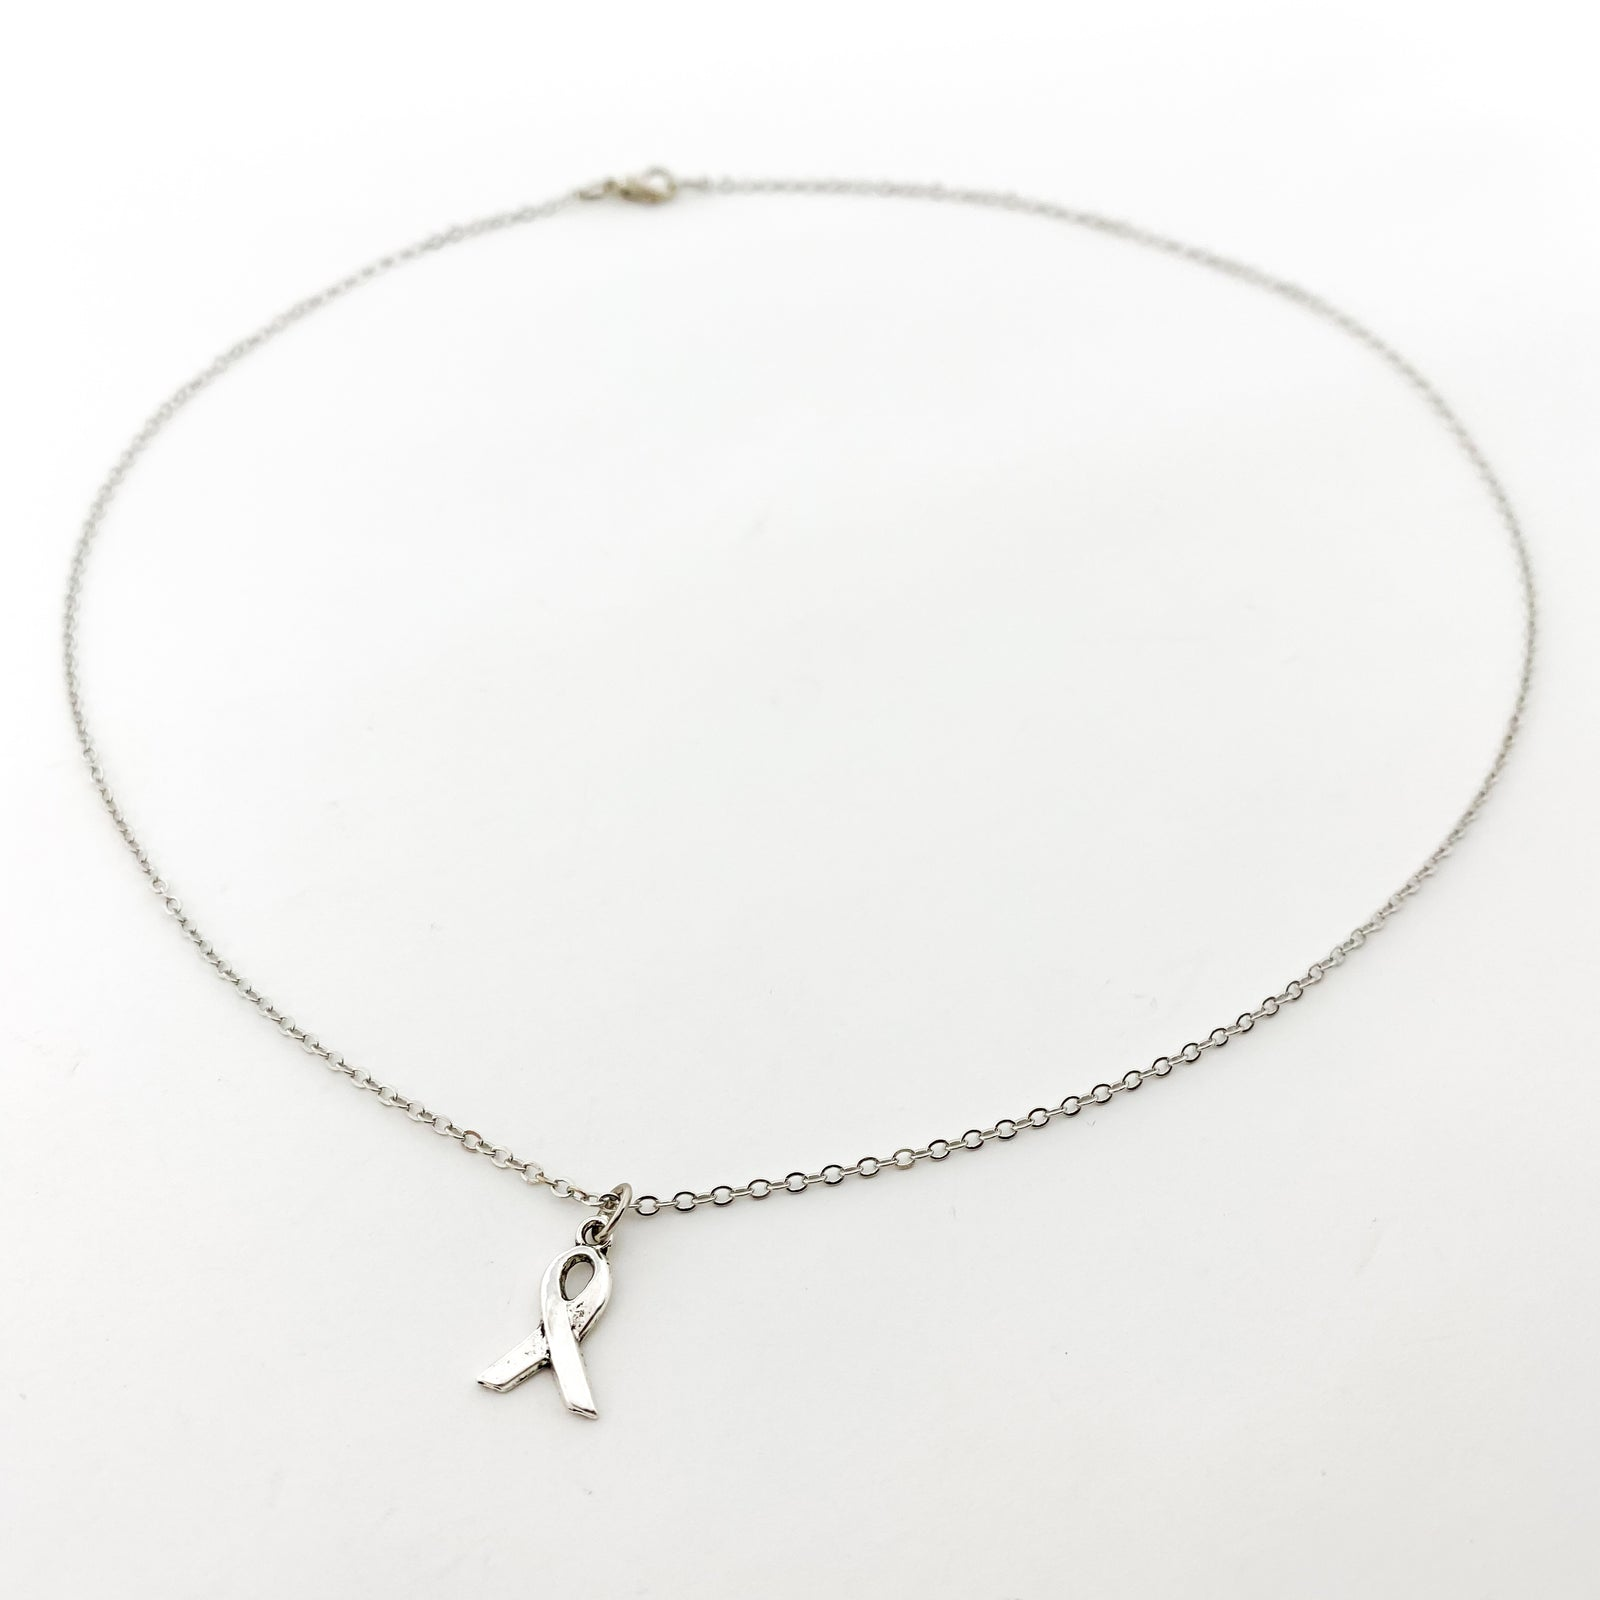 AWARENESS RIBBON NECKLACE | SILVER